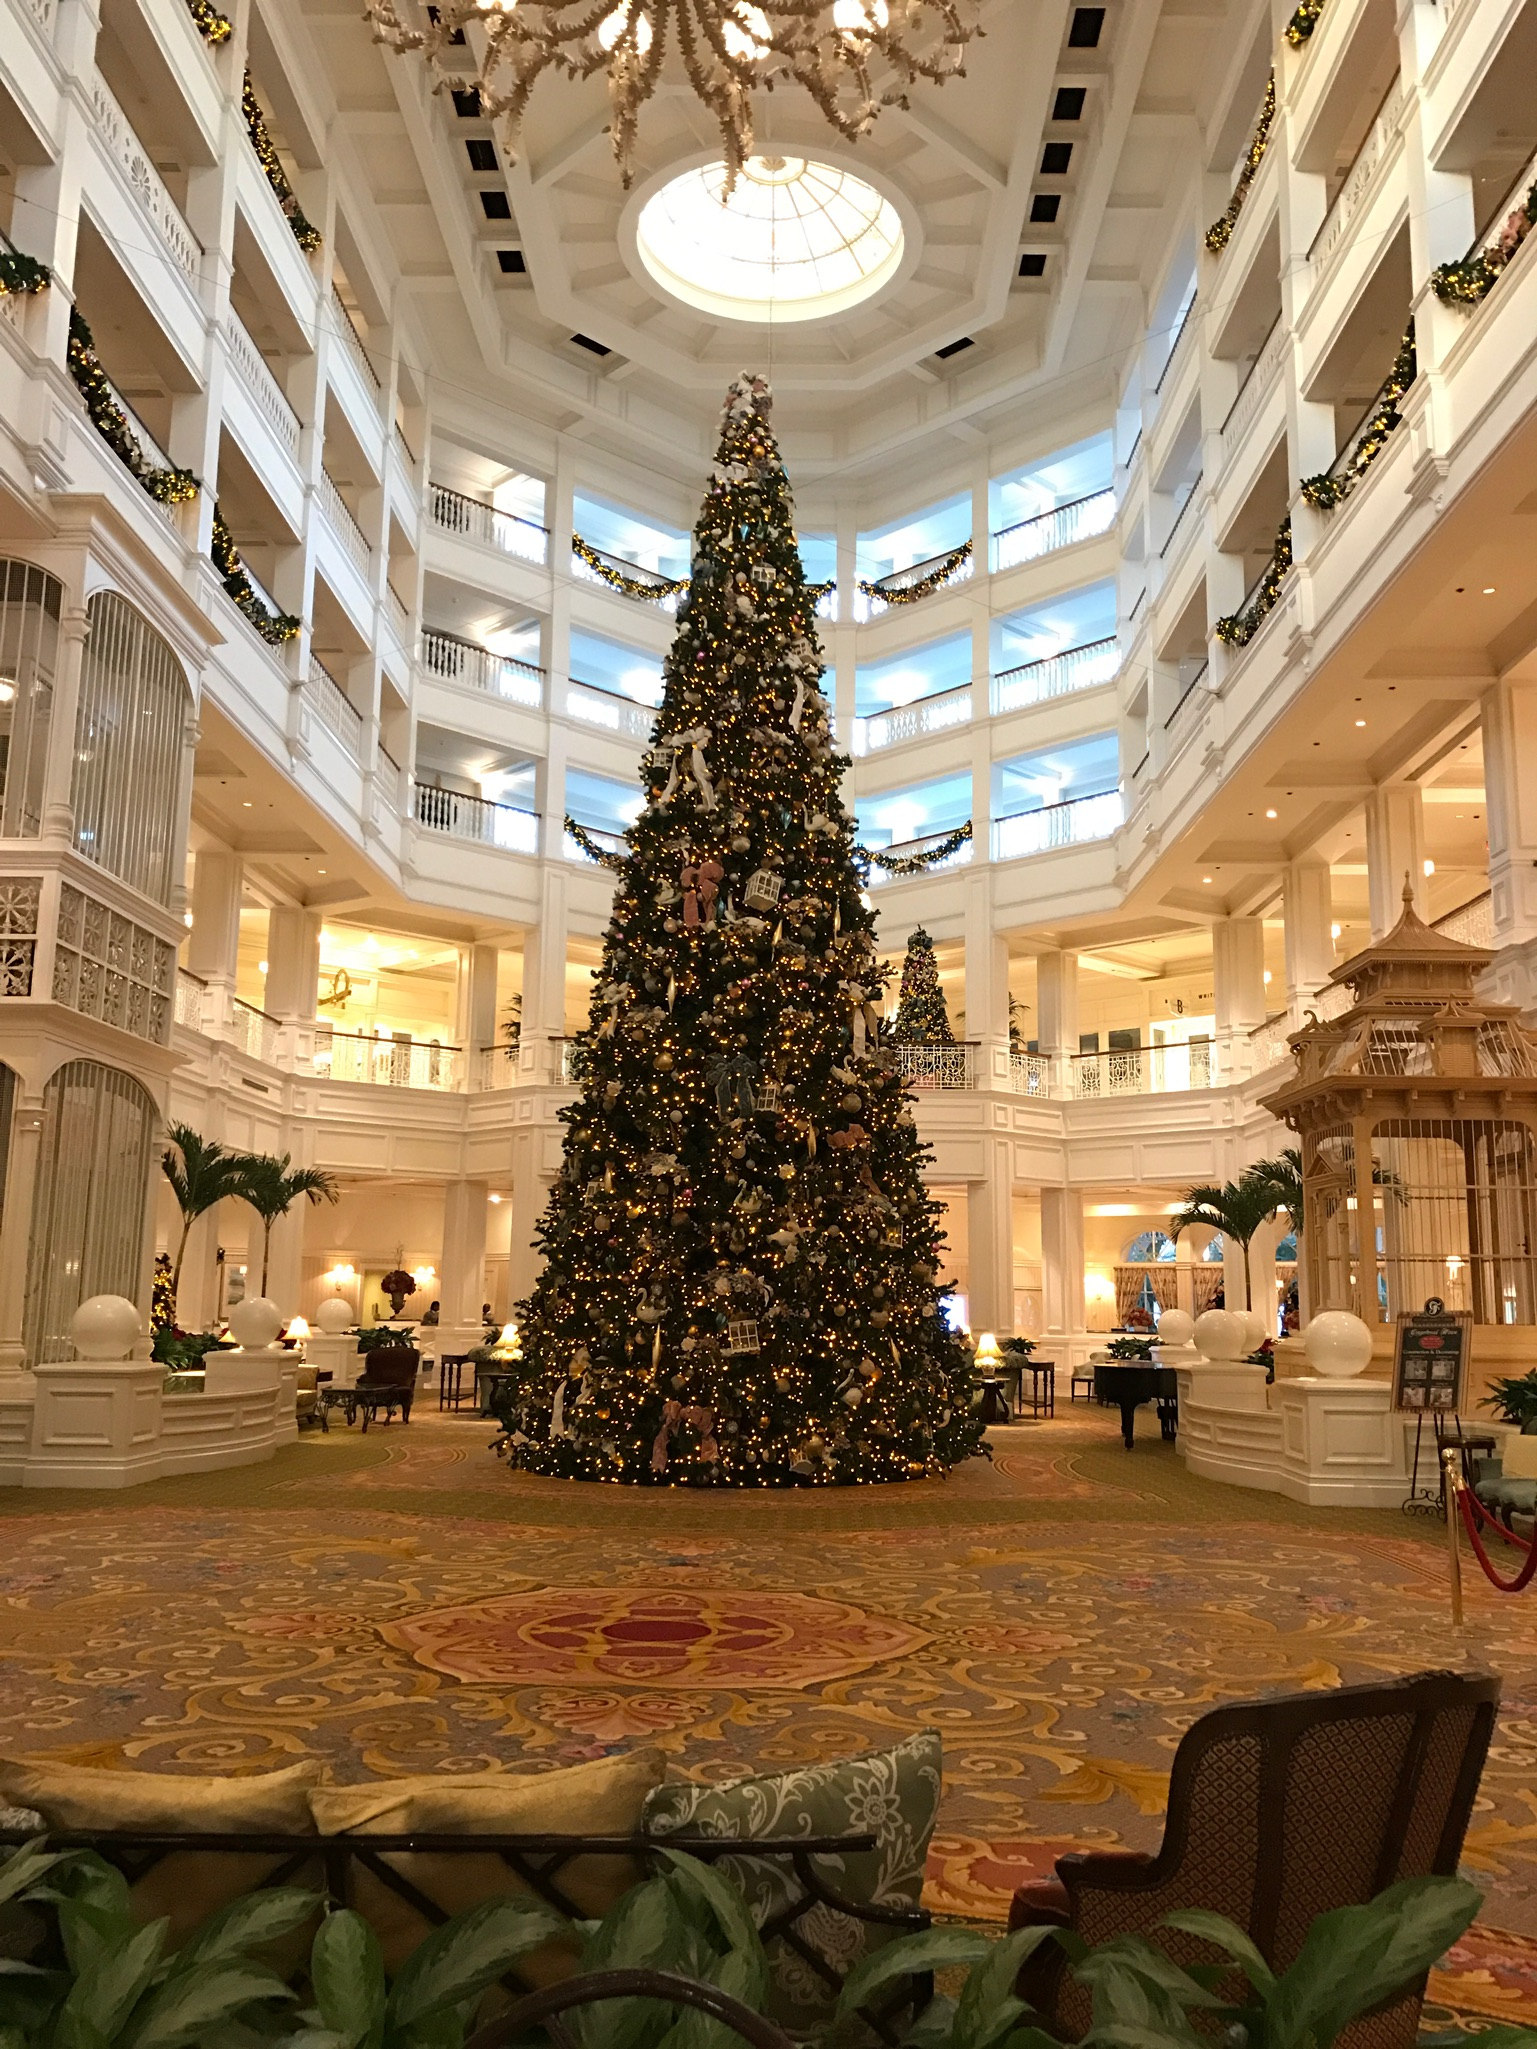 Disney's Grand Floridian has the most magnificent Christmas tree.